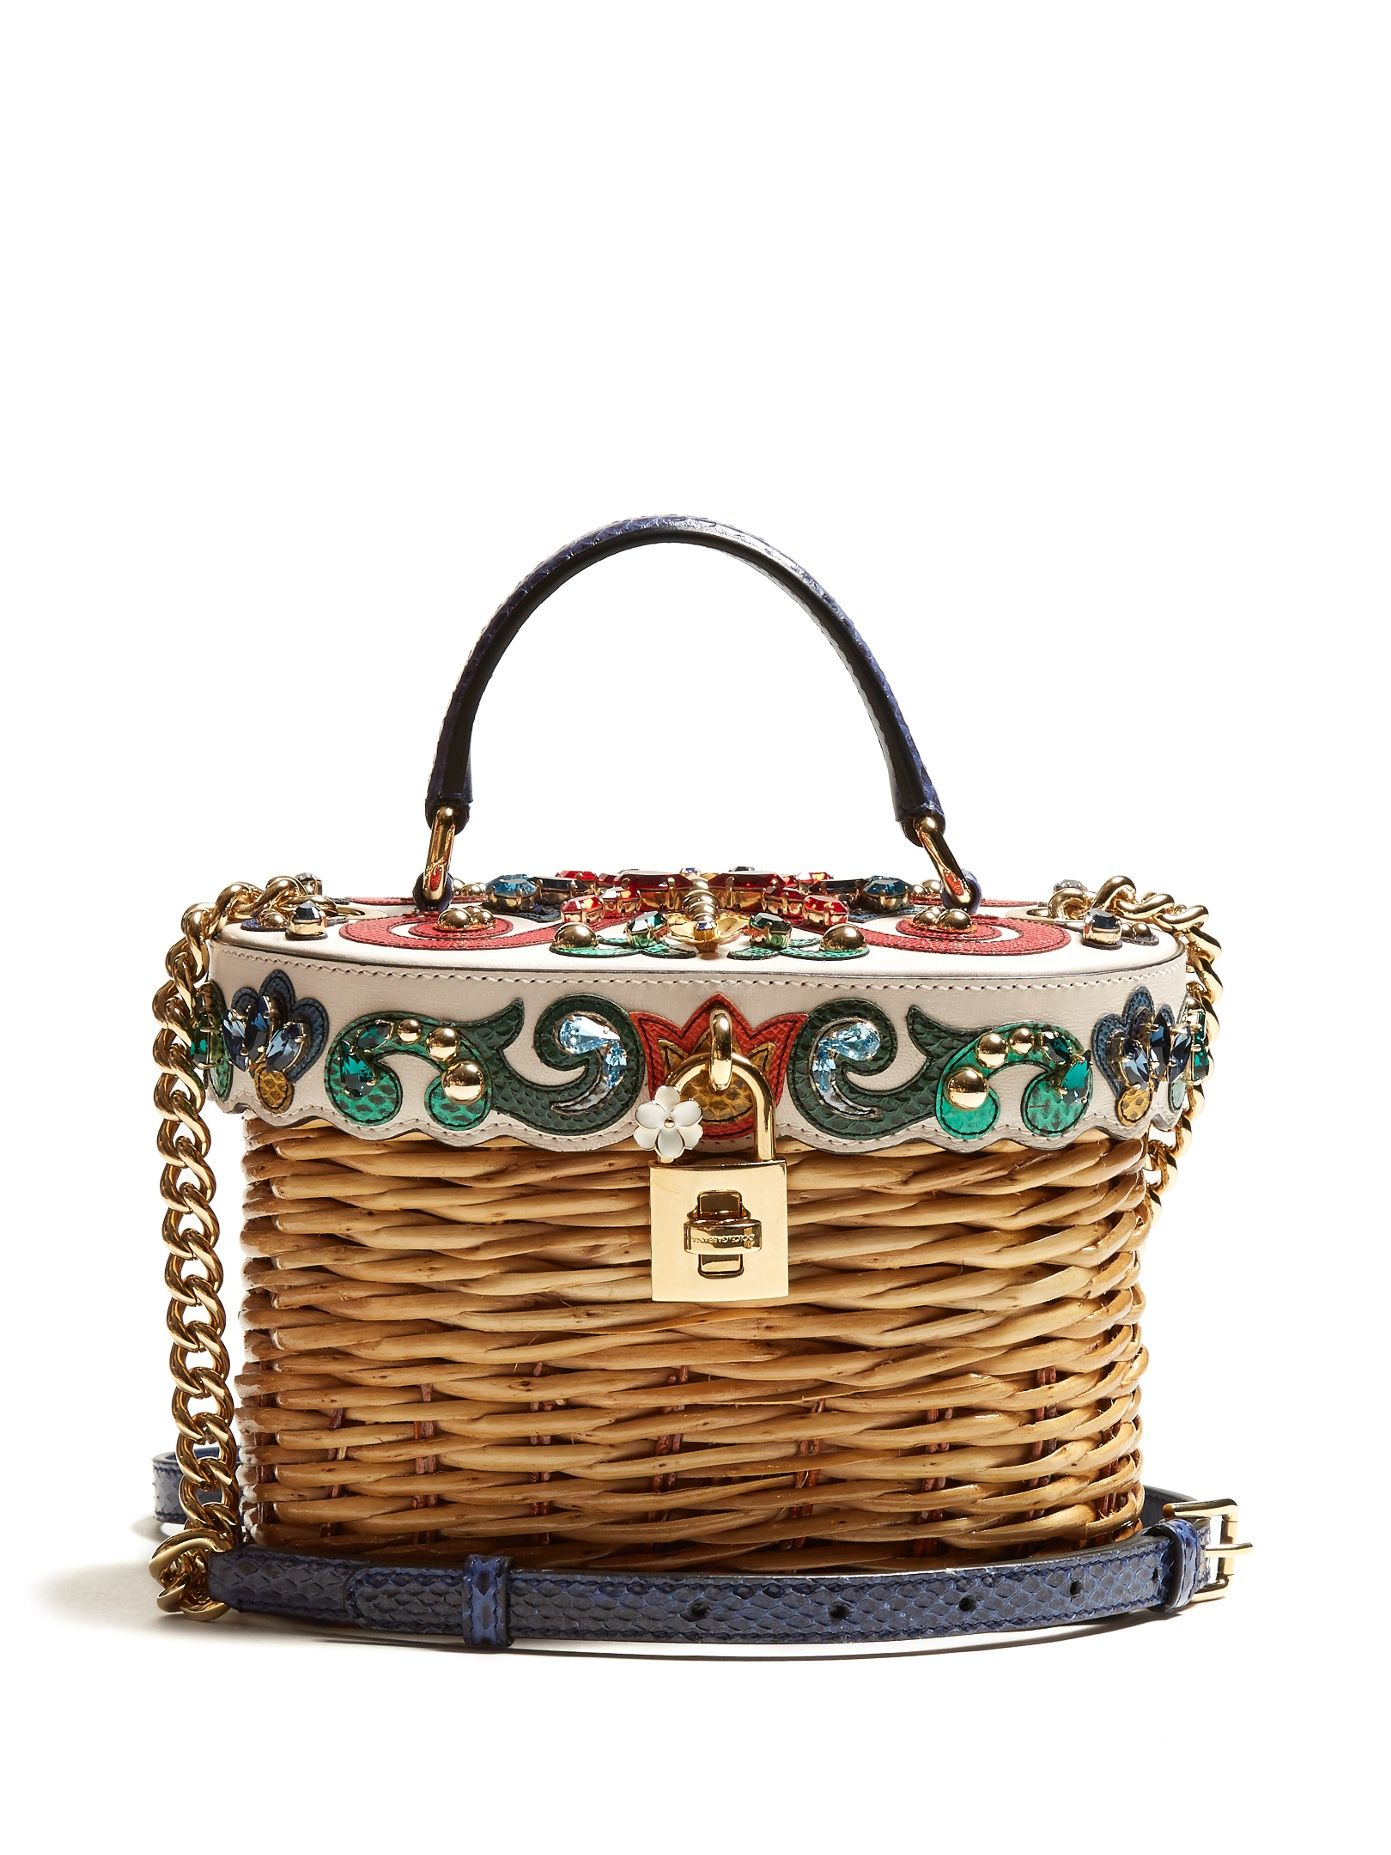 4ecf978558b Click here to buy Dolce   Gabbana Crystal-embellished leather-trimmed  basket bag at MATCHESFASHION.COM